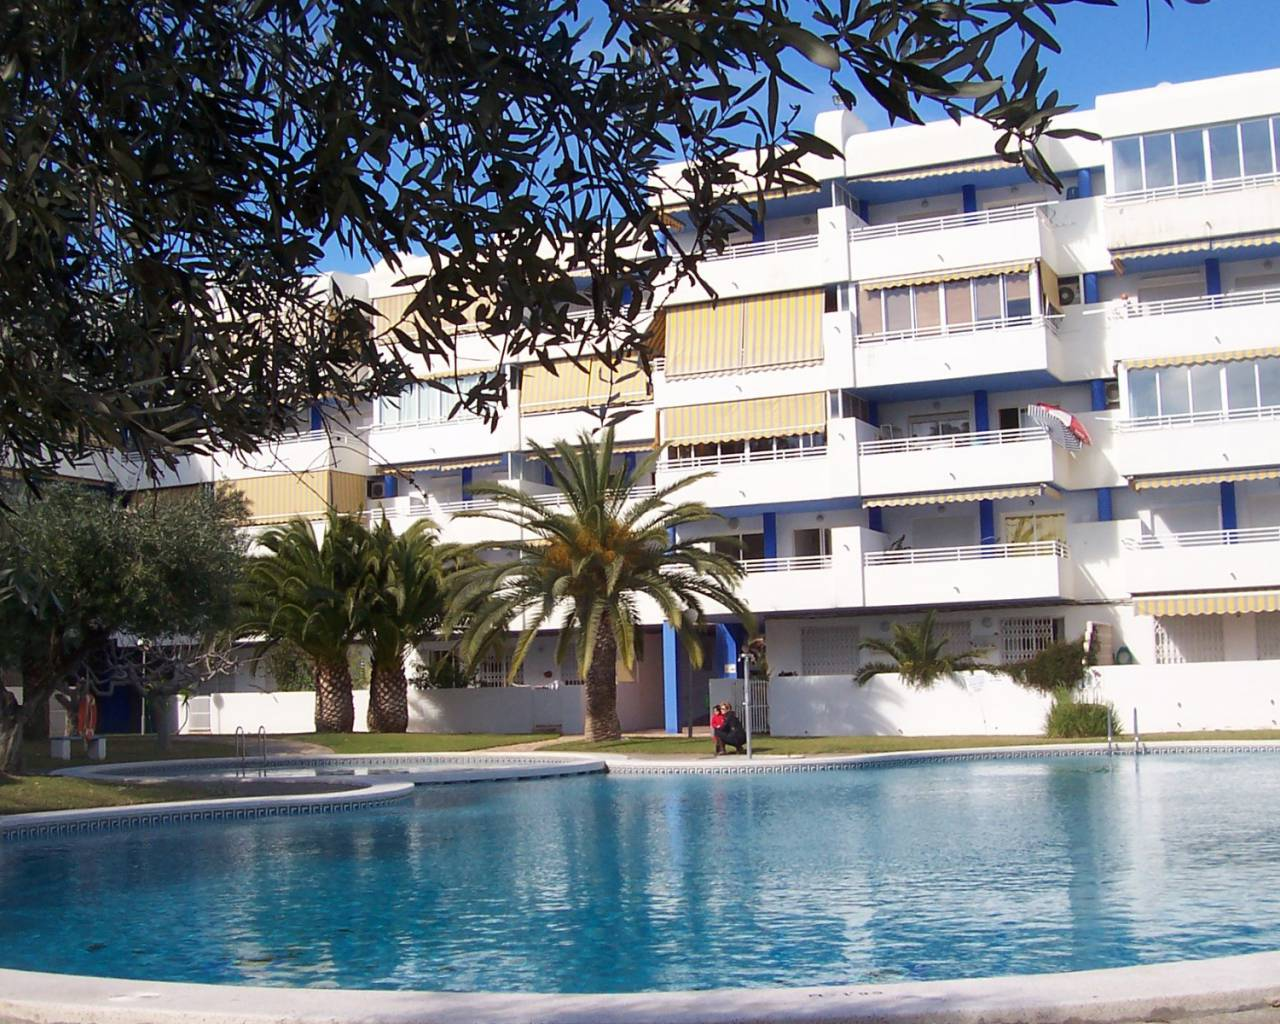 Sale - Apartment / Flat - Villajoyosa - Playa Paraiso